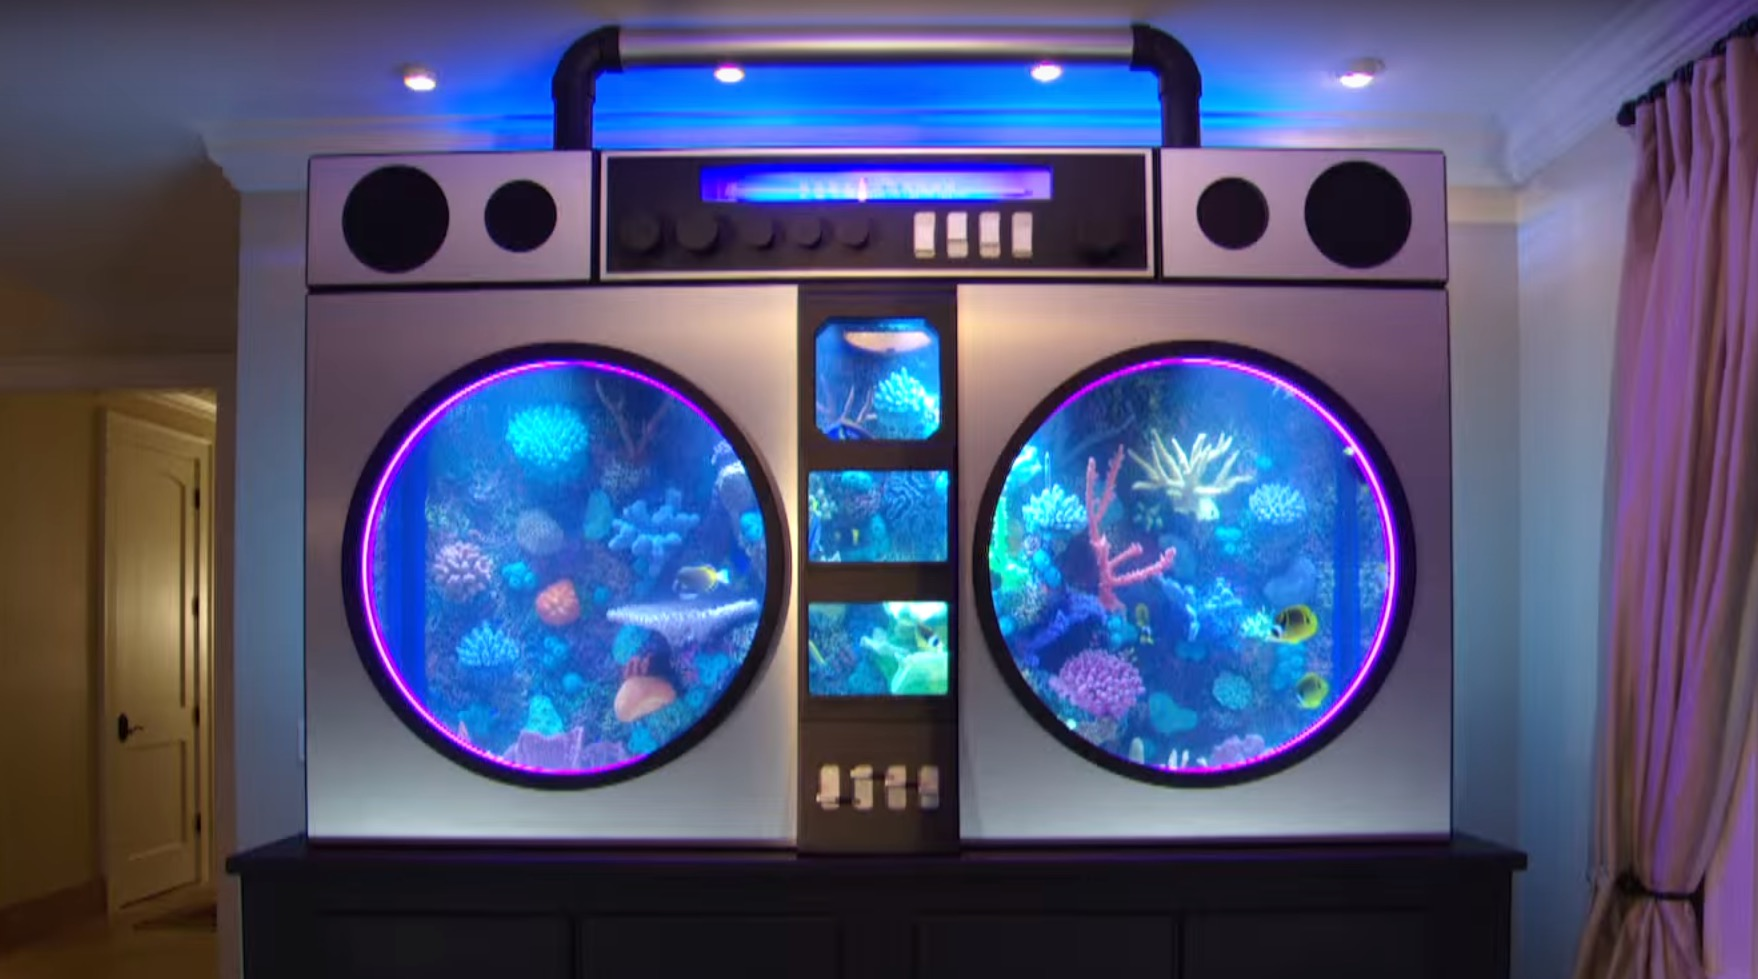 Chicago Bulls Player Gets Boom Box Aquarium Installed in Home | RTM - RightThisMinute